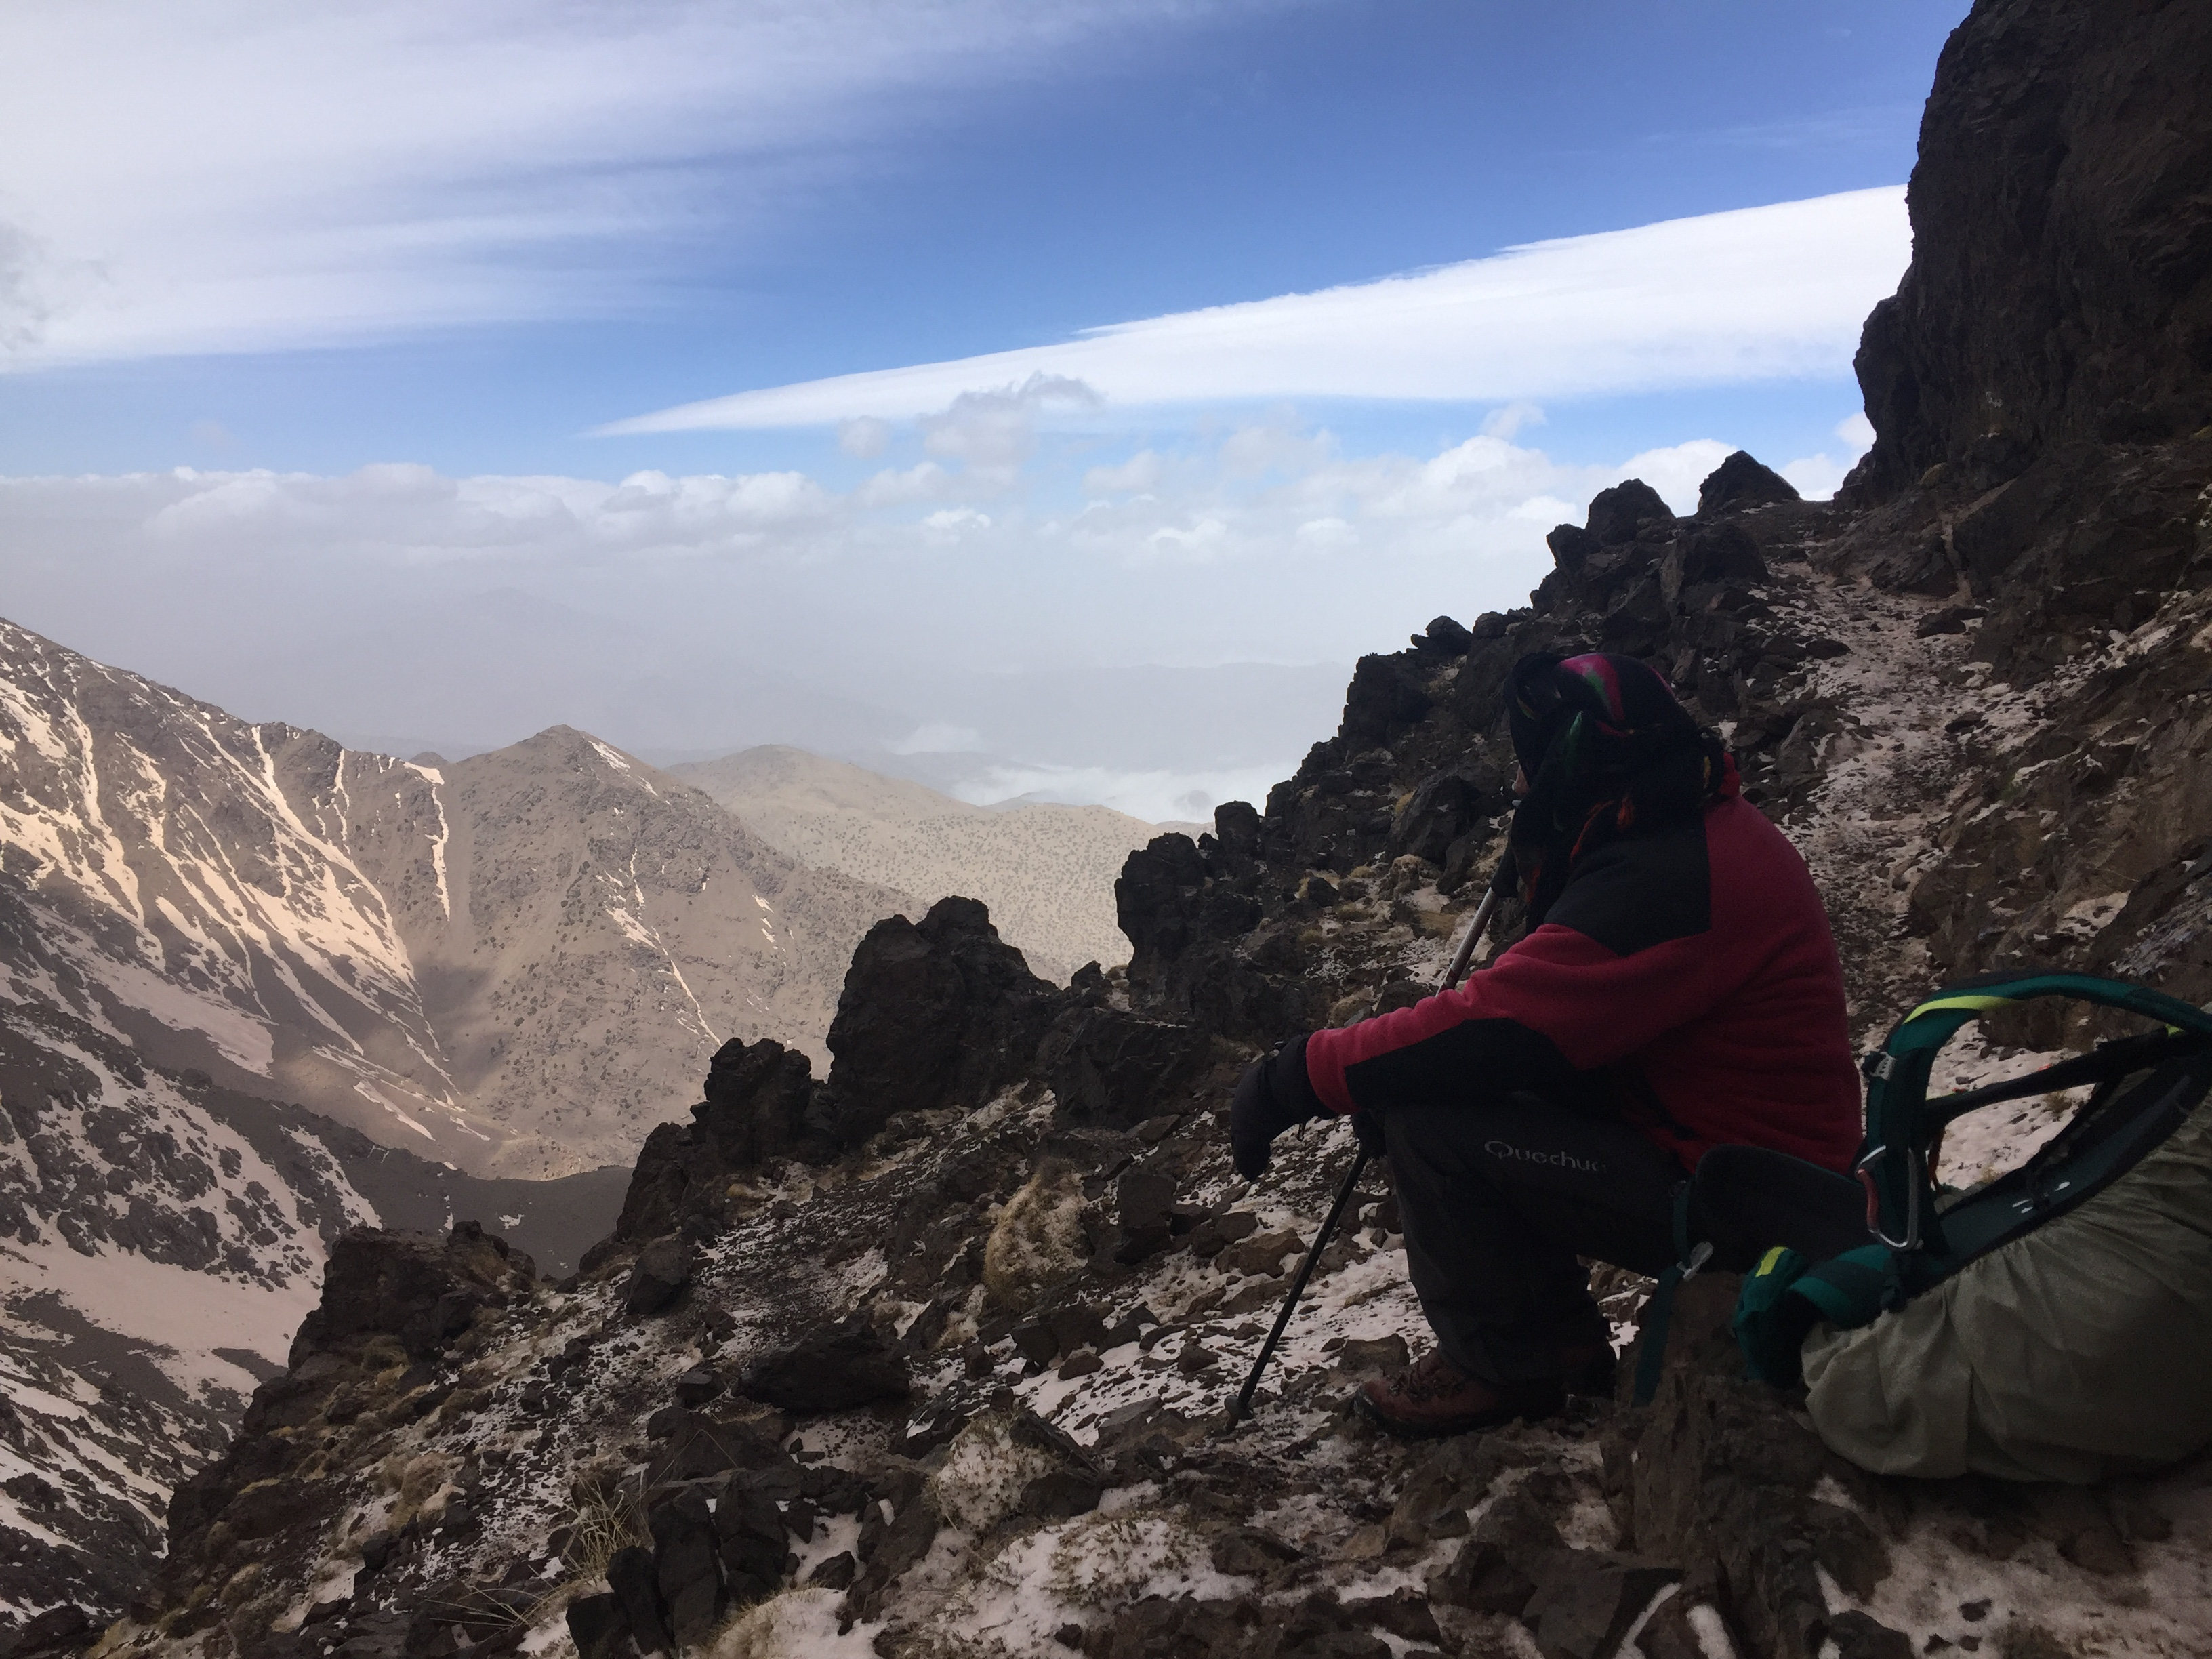 Mt Toubkal and the Atlas Mountains - May 2020